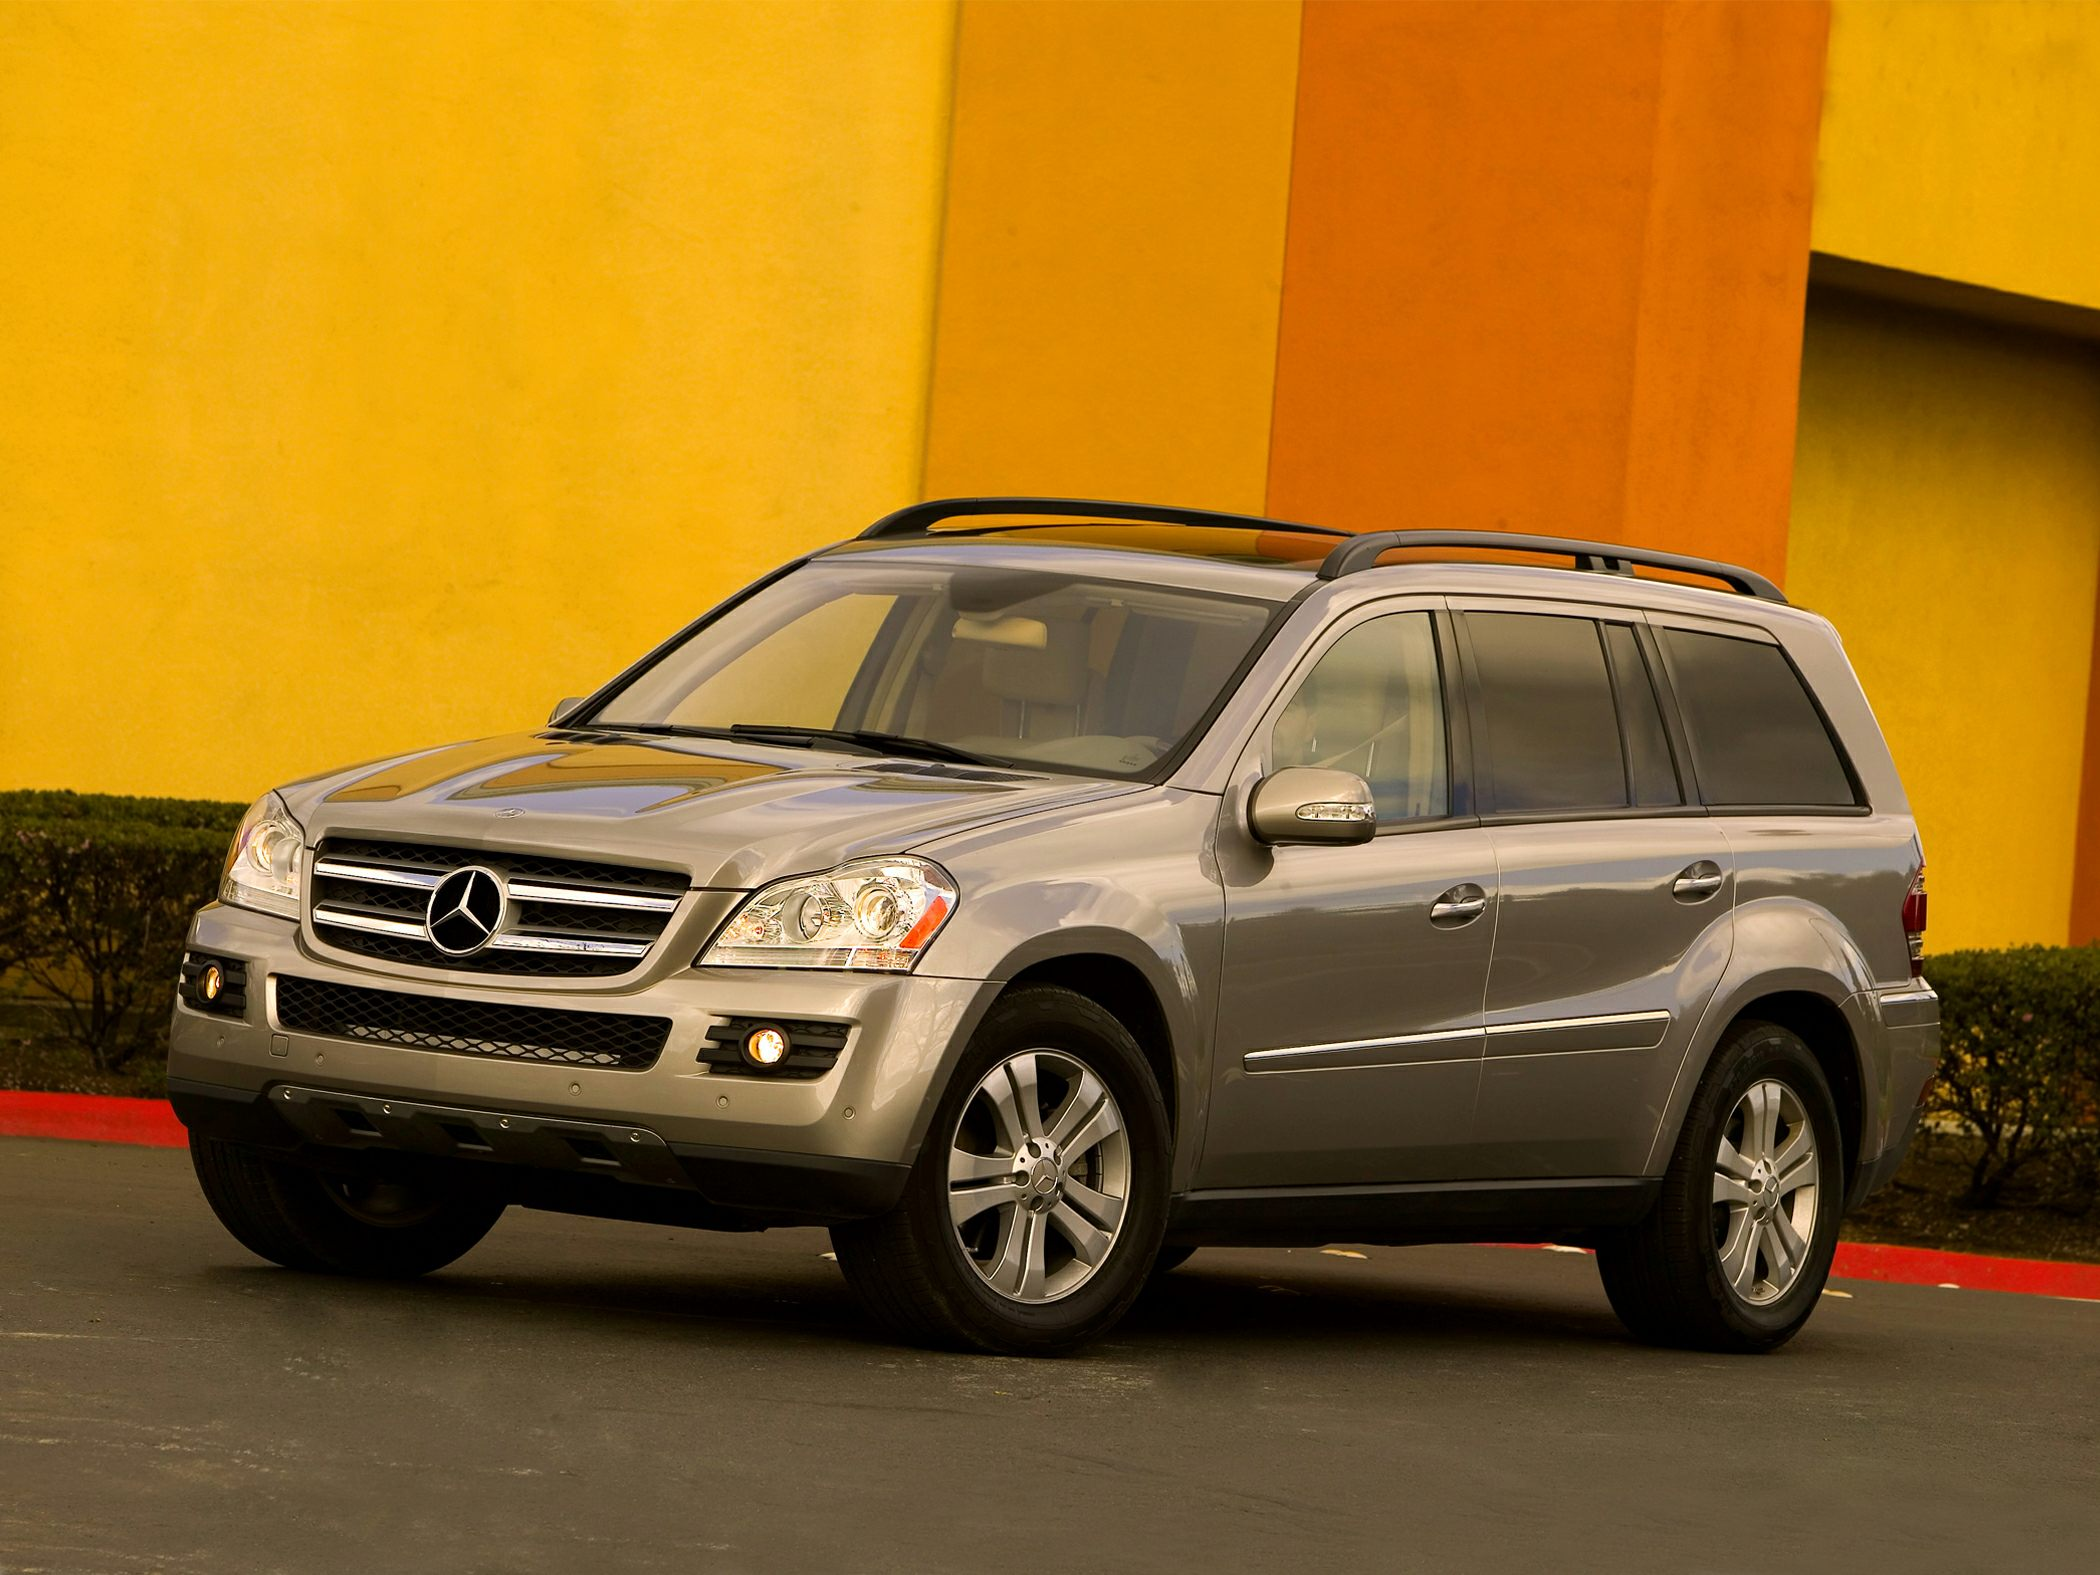 2008 Mercedes-Benz GL450 Pictures & Photos - CarsDirect